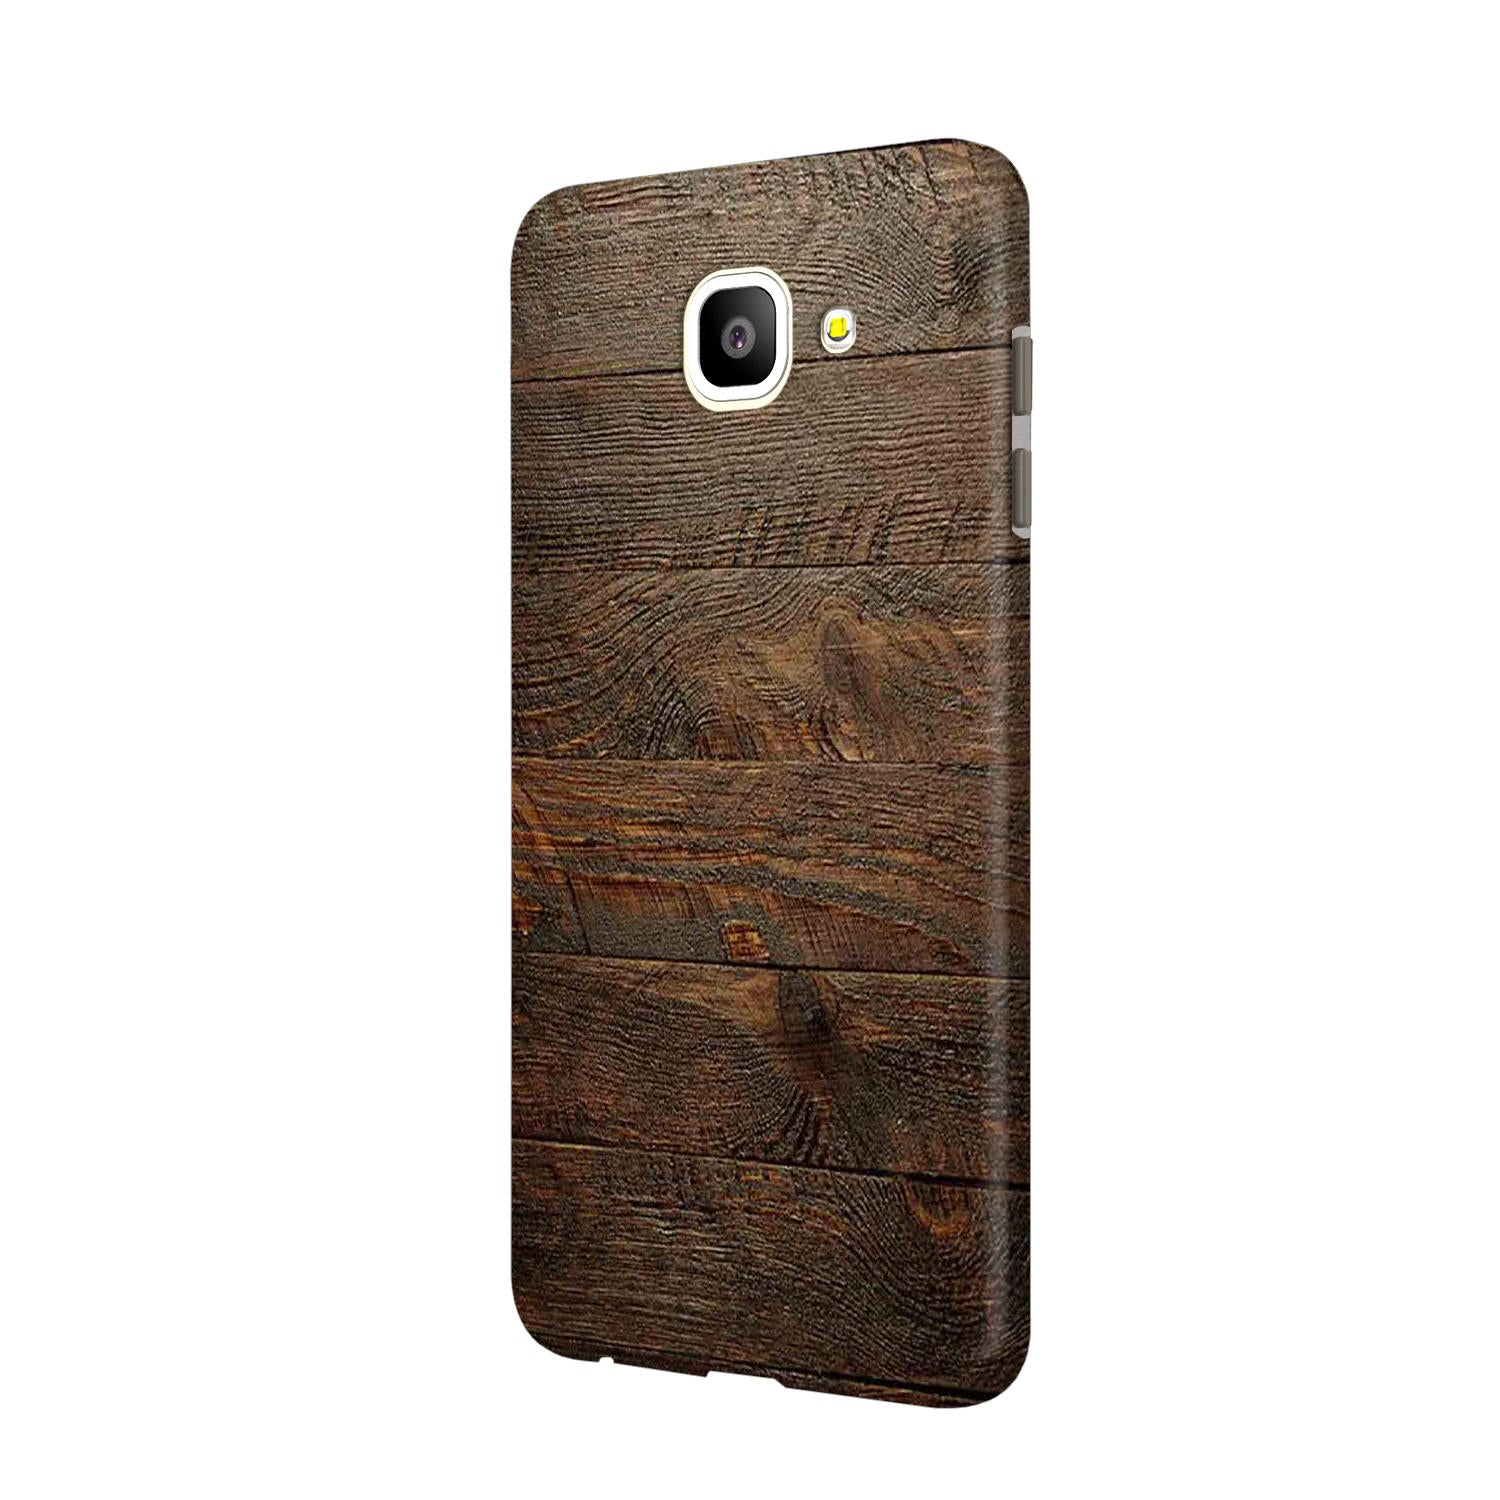 Wooden Wall Samsung Galaxy J7 Max Mobile Cover Case - MADANYU